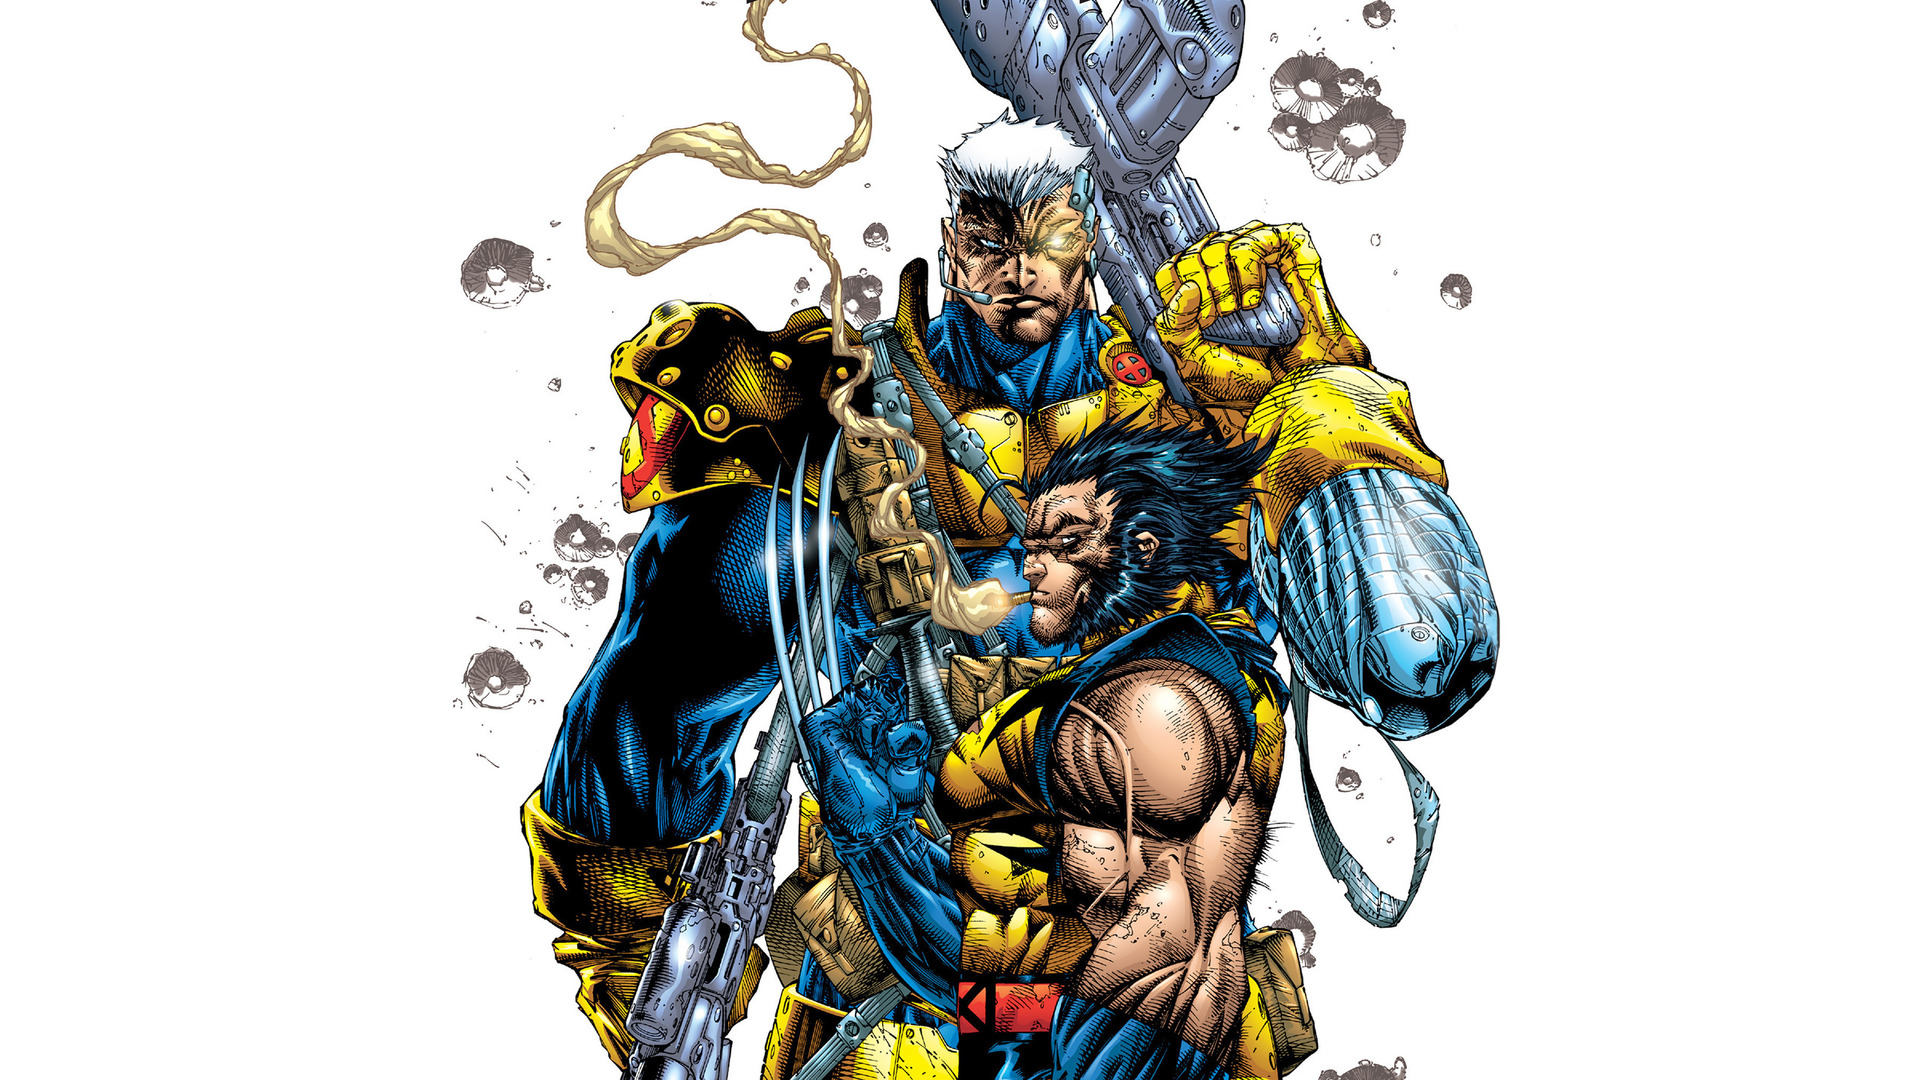 1920x1080 Cable Wolverine Artwork Laptop Full Hd 1080p Hd 4k